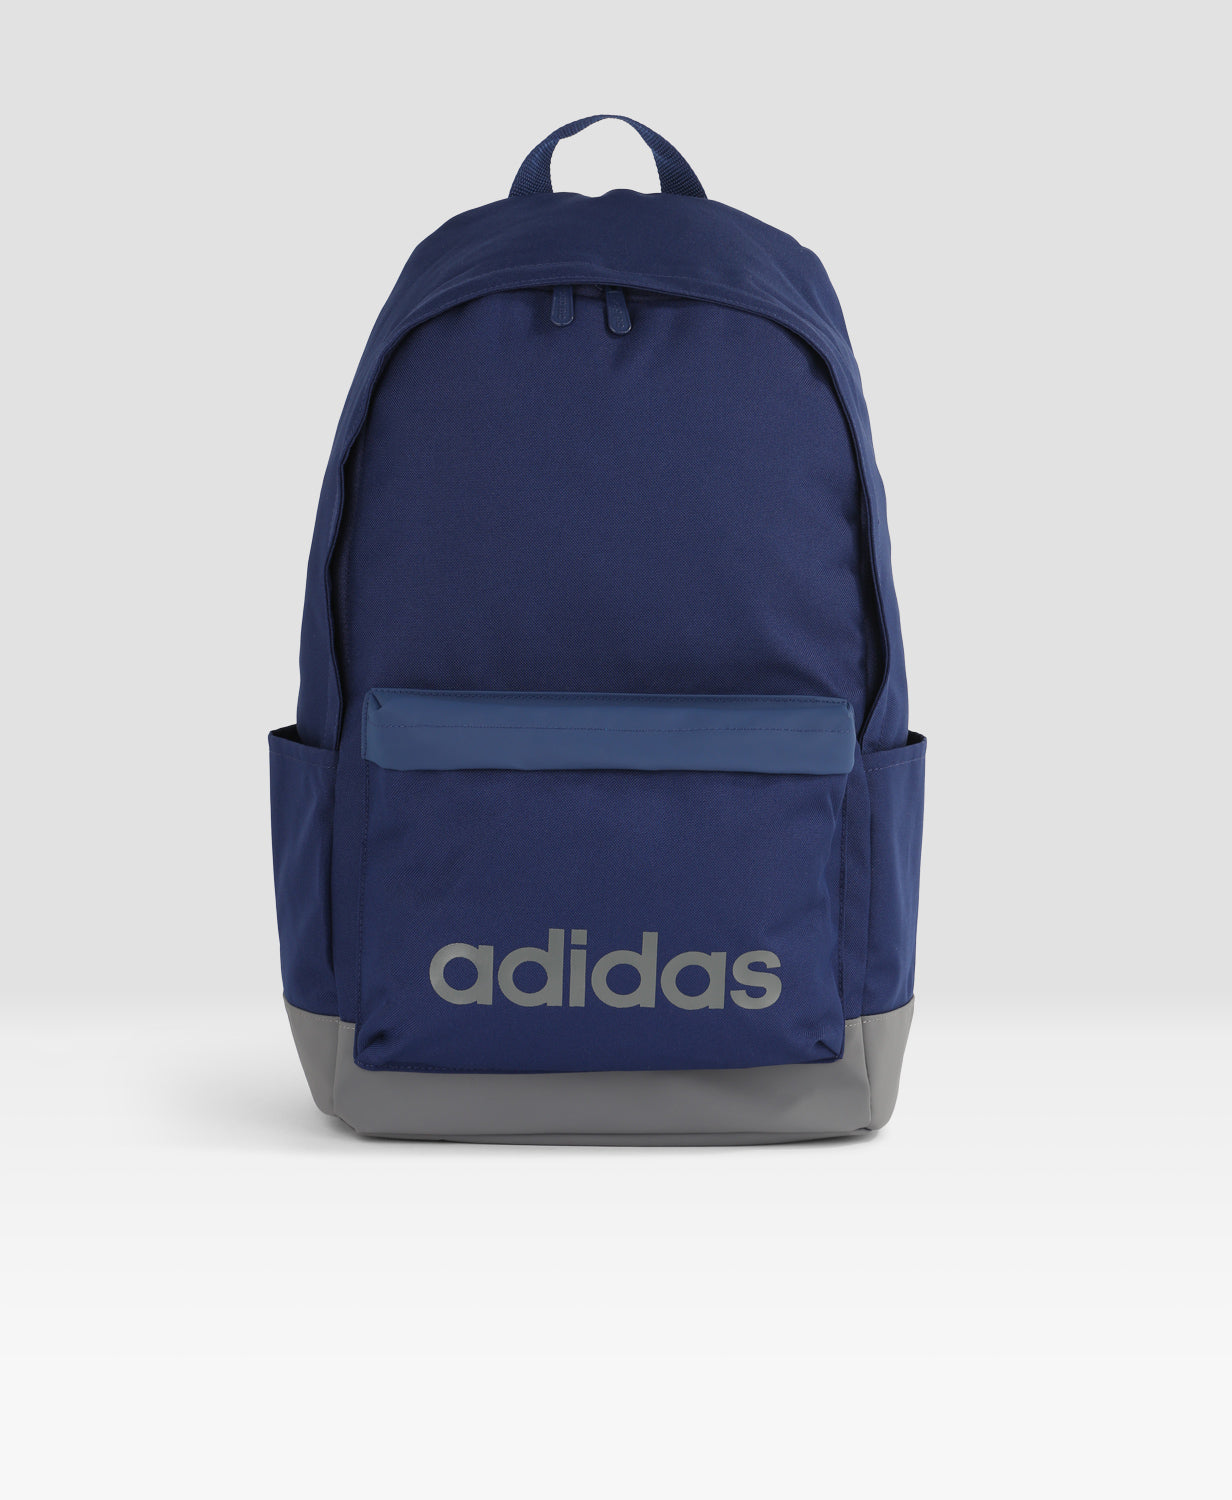 Adidas Linear Classic Backpack XL Navy DT8642 Sportstar Pro Newcastle, 2300 NSW Australia. 1